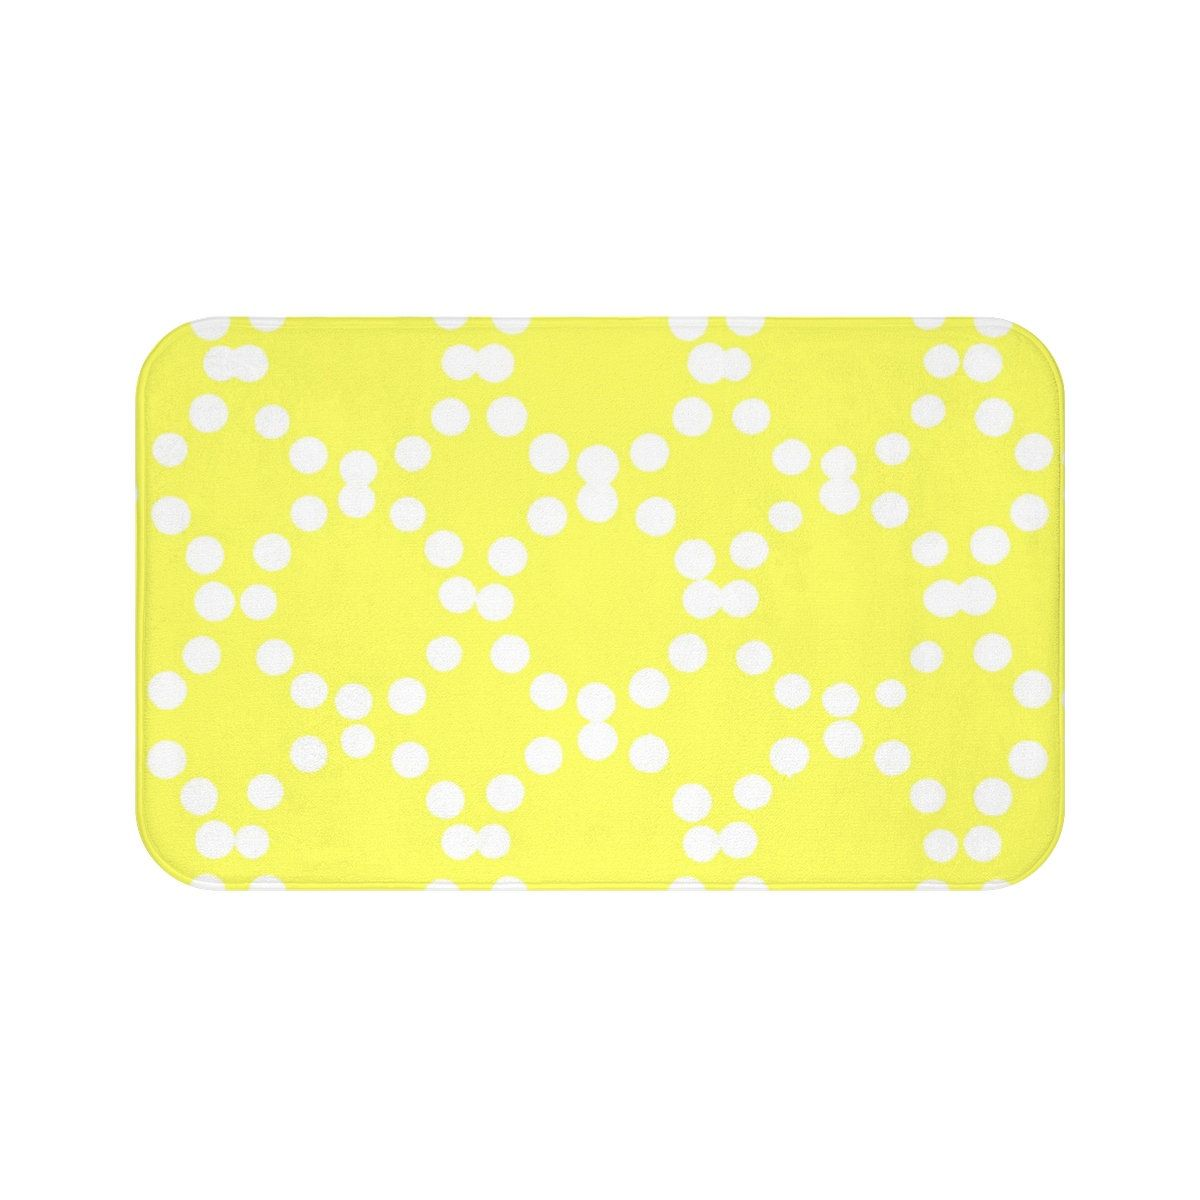 Lemon Yellow Bath Mat Yellow And White Bath Mat Ring Dot